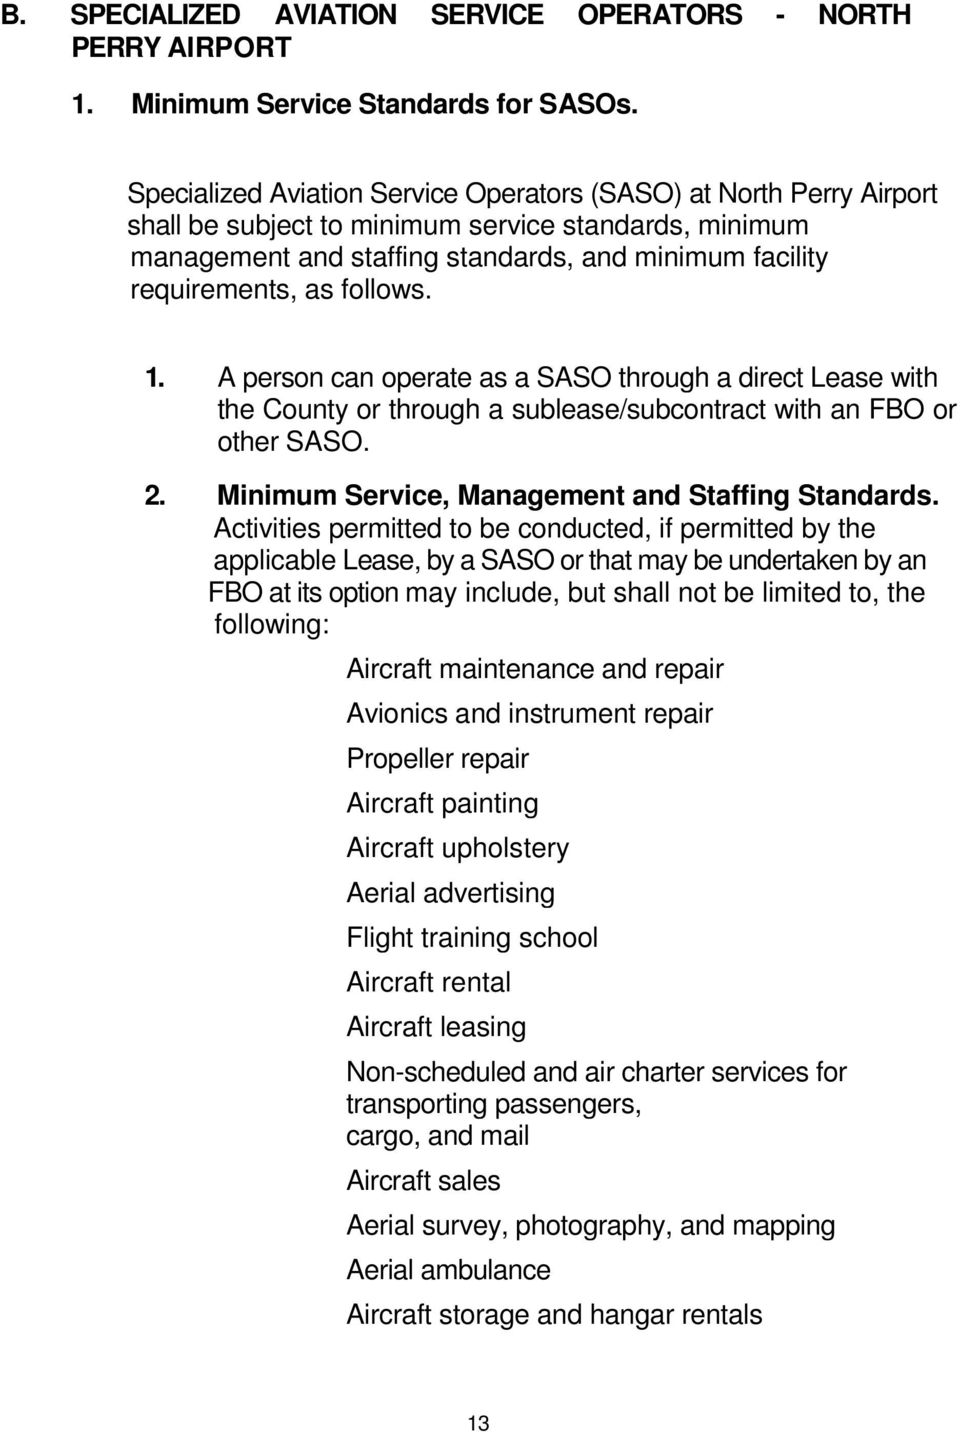 follows. 1. A person can operate as a SASO through a direct Lease with the County or through a sublease/subcontract with an FBO or other SASO. 2. Minimum Service, Management and Staffing Standards.